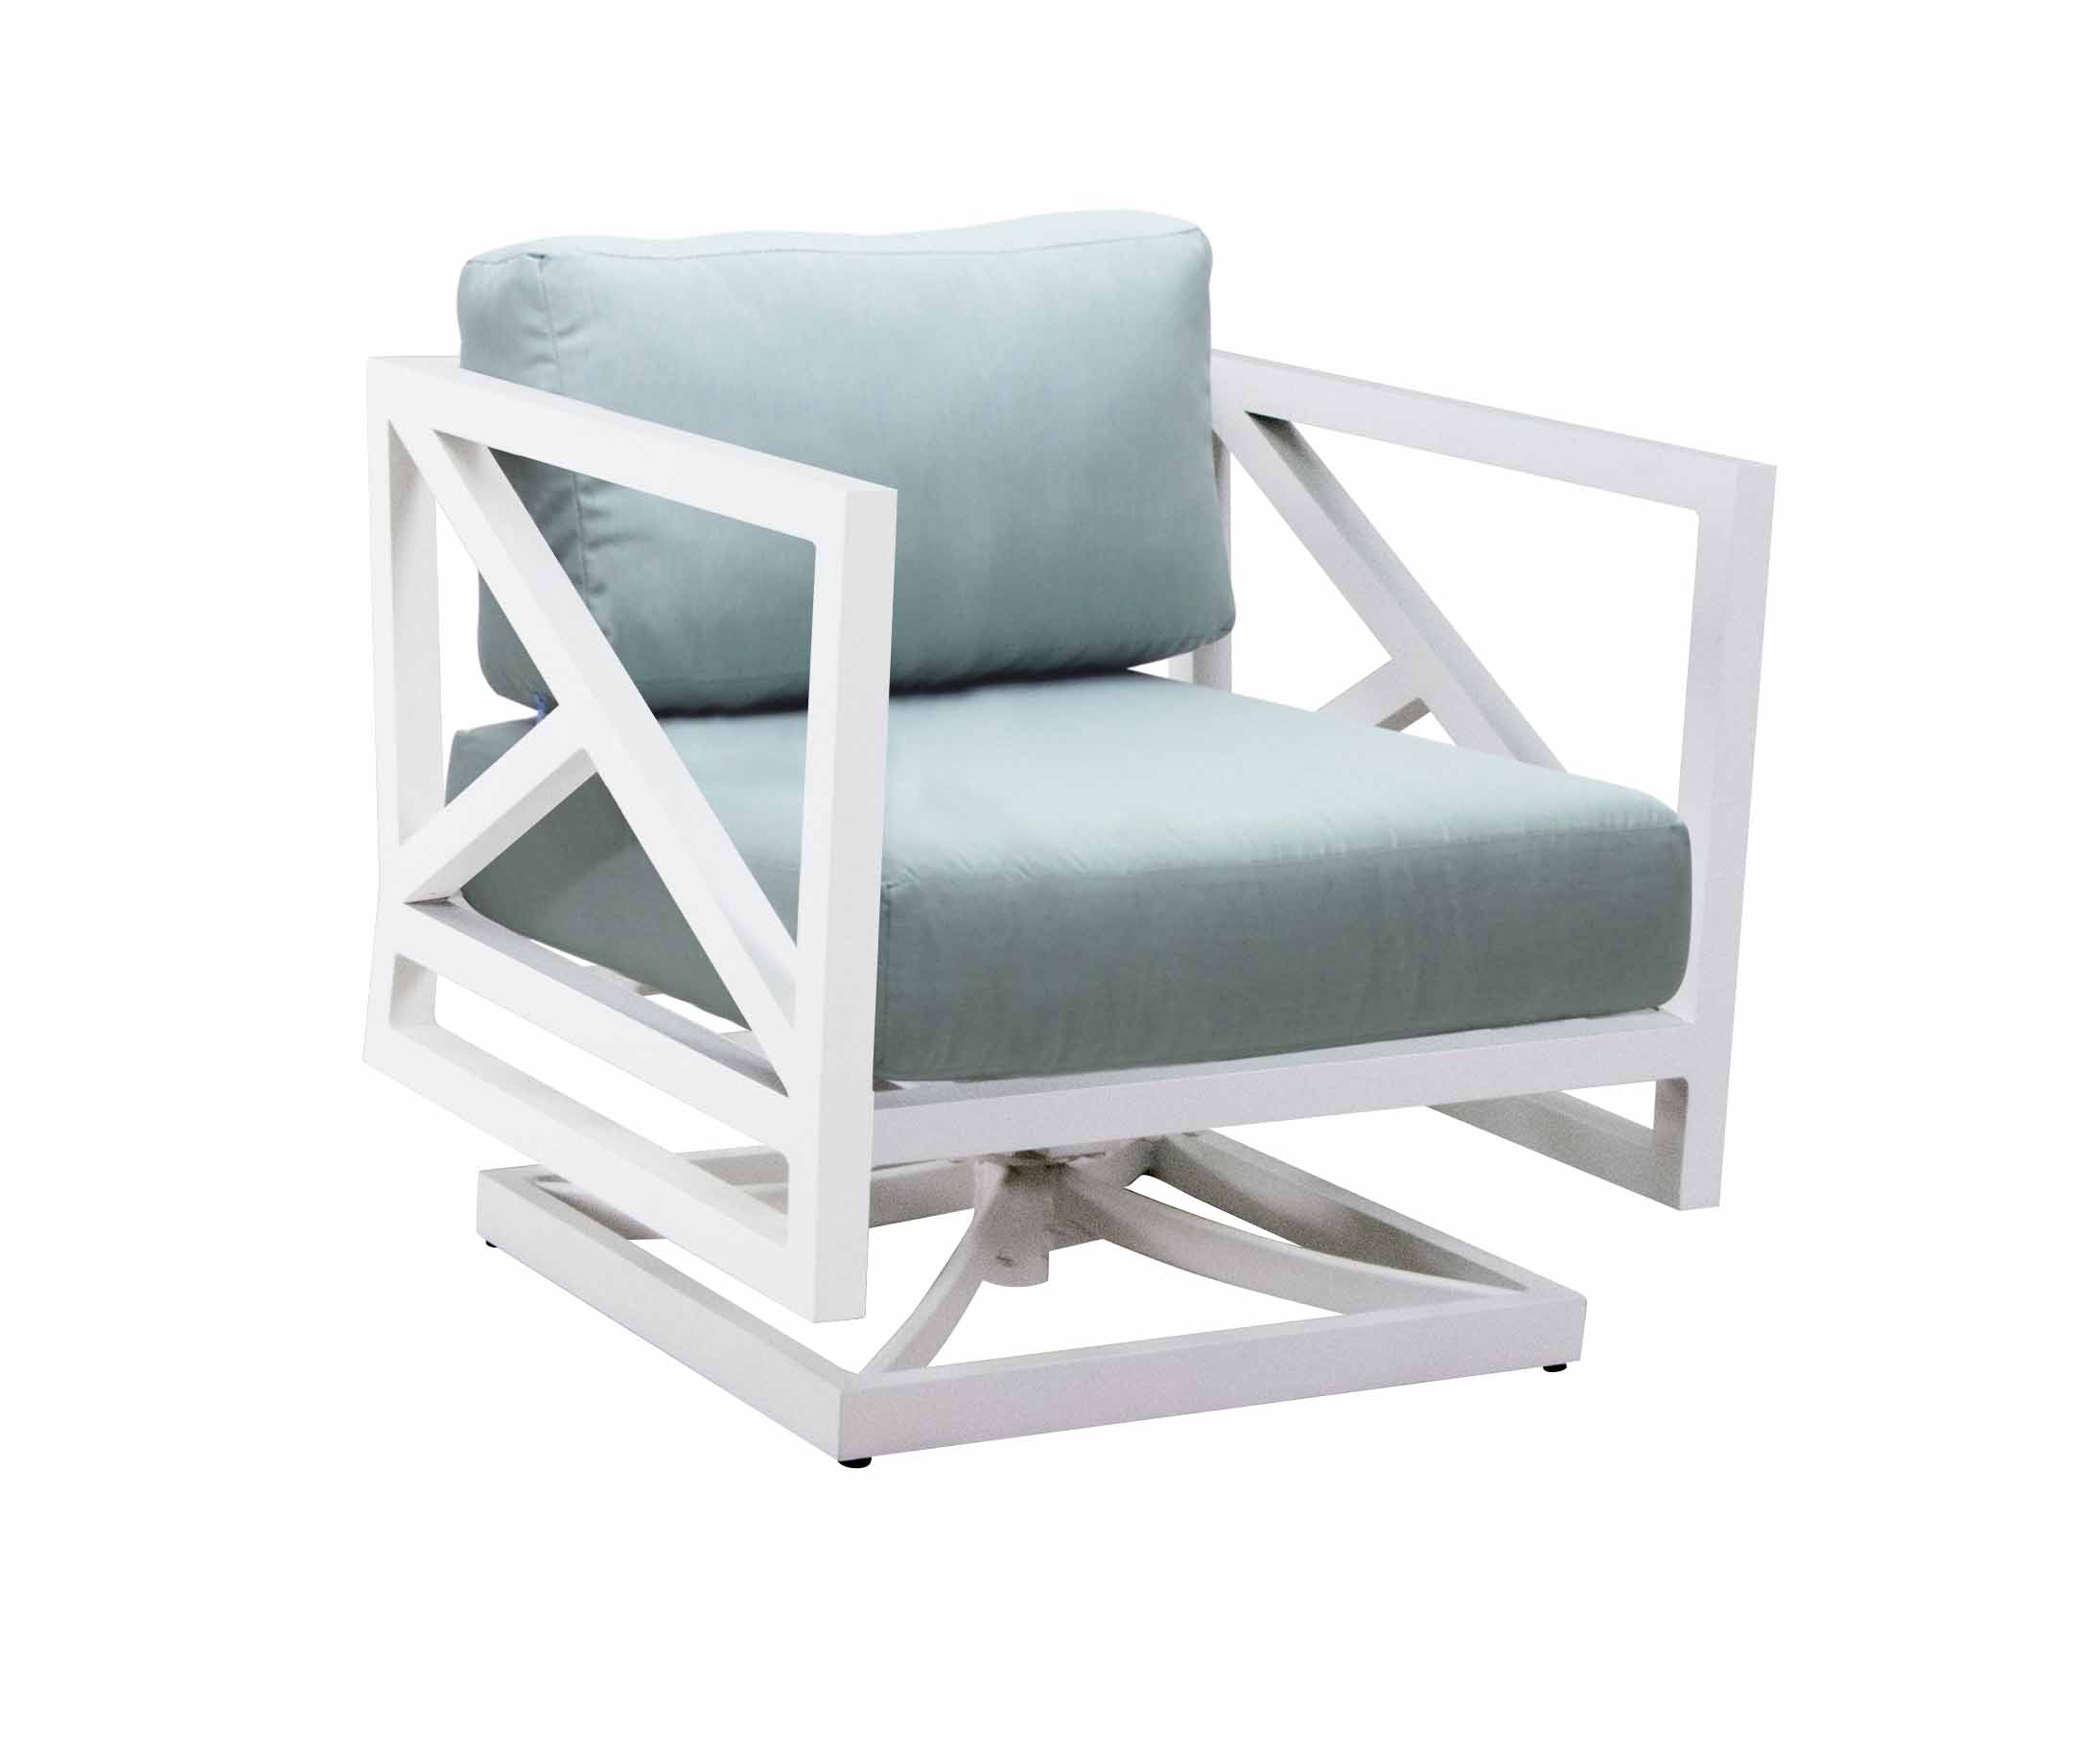 "873531 St. Lucia Lounge Chair   29.3"" x 29.5"" x 26.4"""